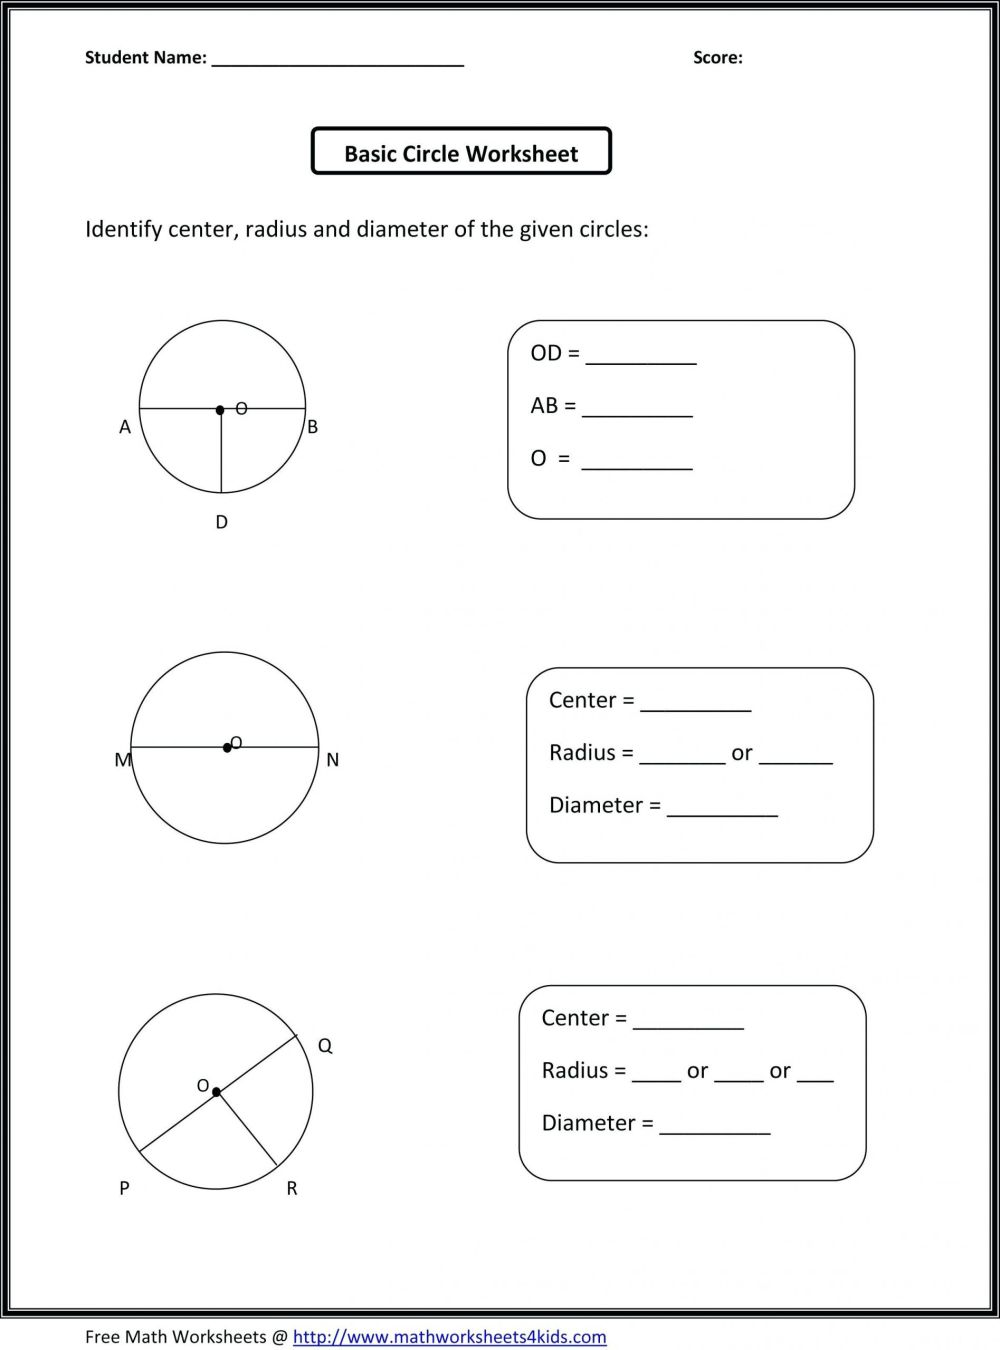 medium resolution of 5 Free Math Worksheets Second Grade 2 Subtraction Subtract whole Hundreds  From 3 Digit Numbers - apocalomegaproductions.com